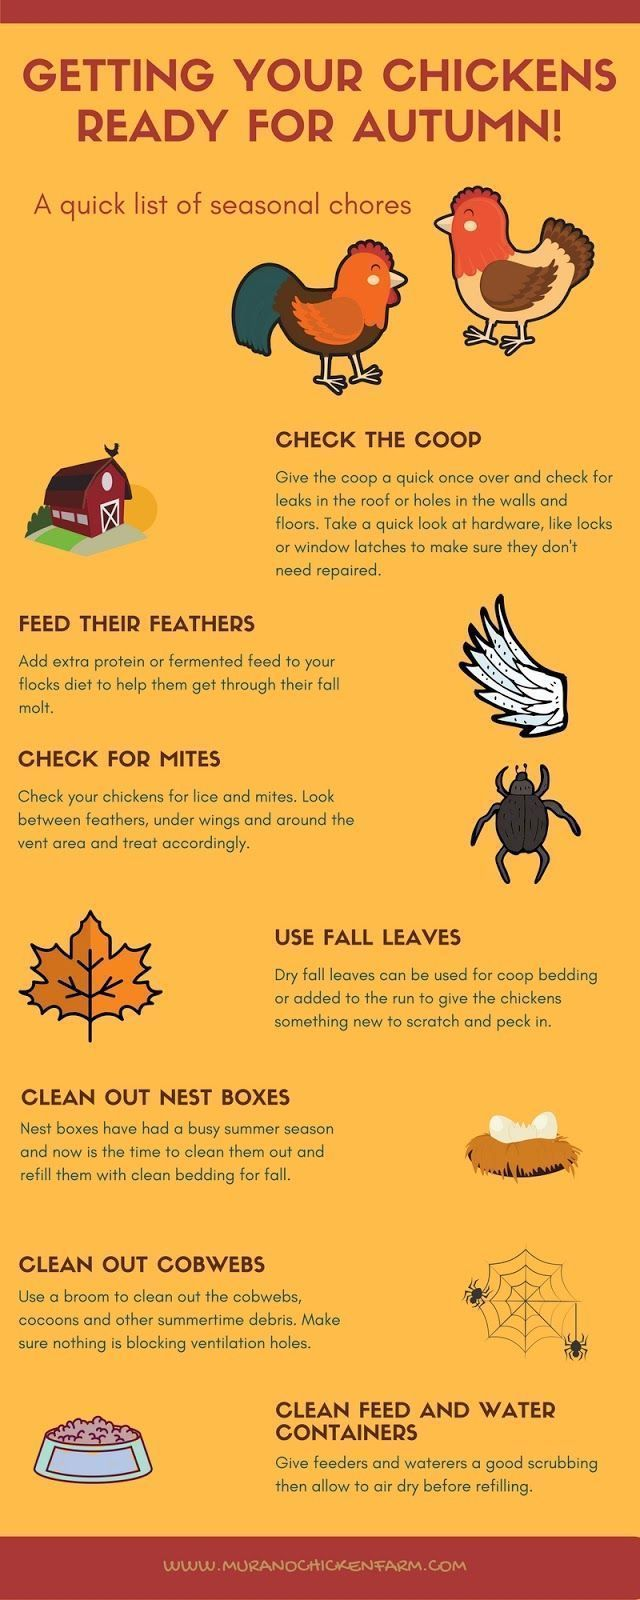 your chickens for Autumn As Autumn begins there are chores that need done in and around the chicken coop to prepare for cooler weather. Here are the 7 fall chores I do every year.As Autumn begins there are chores that need done in and around the chicken coop to prepare for cooler weather. Here are the 7 fall chores I do every year.